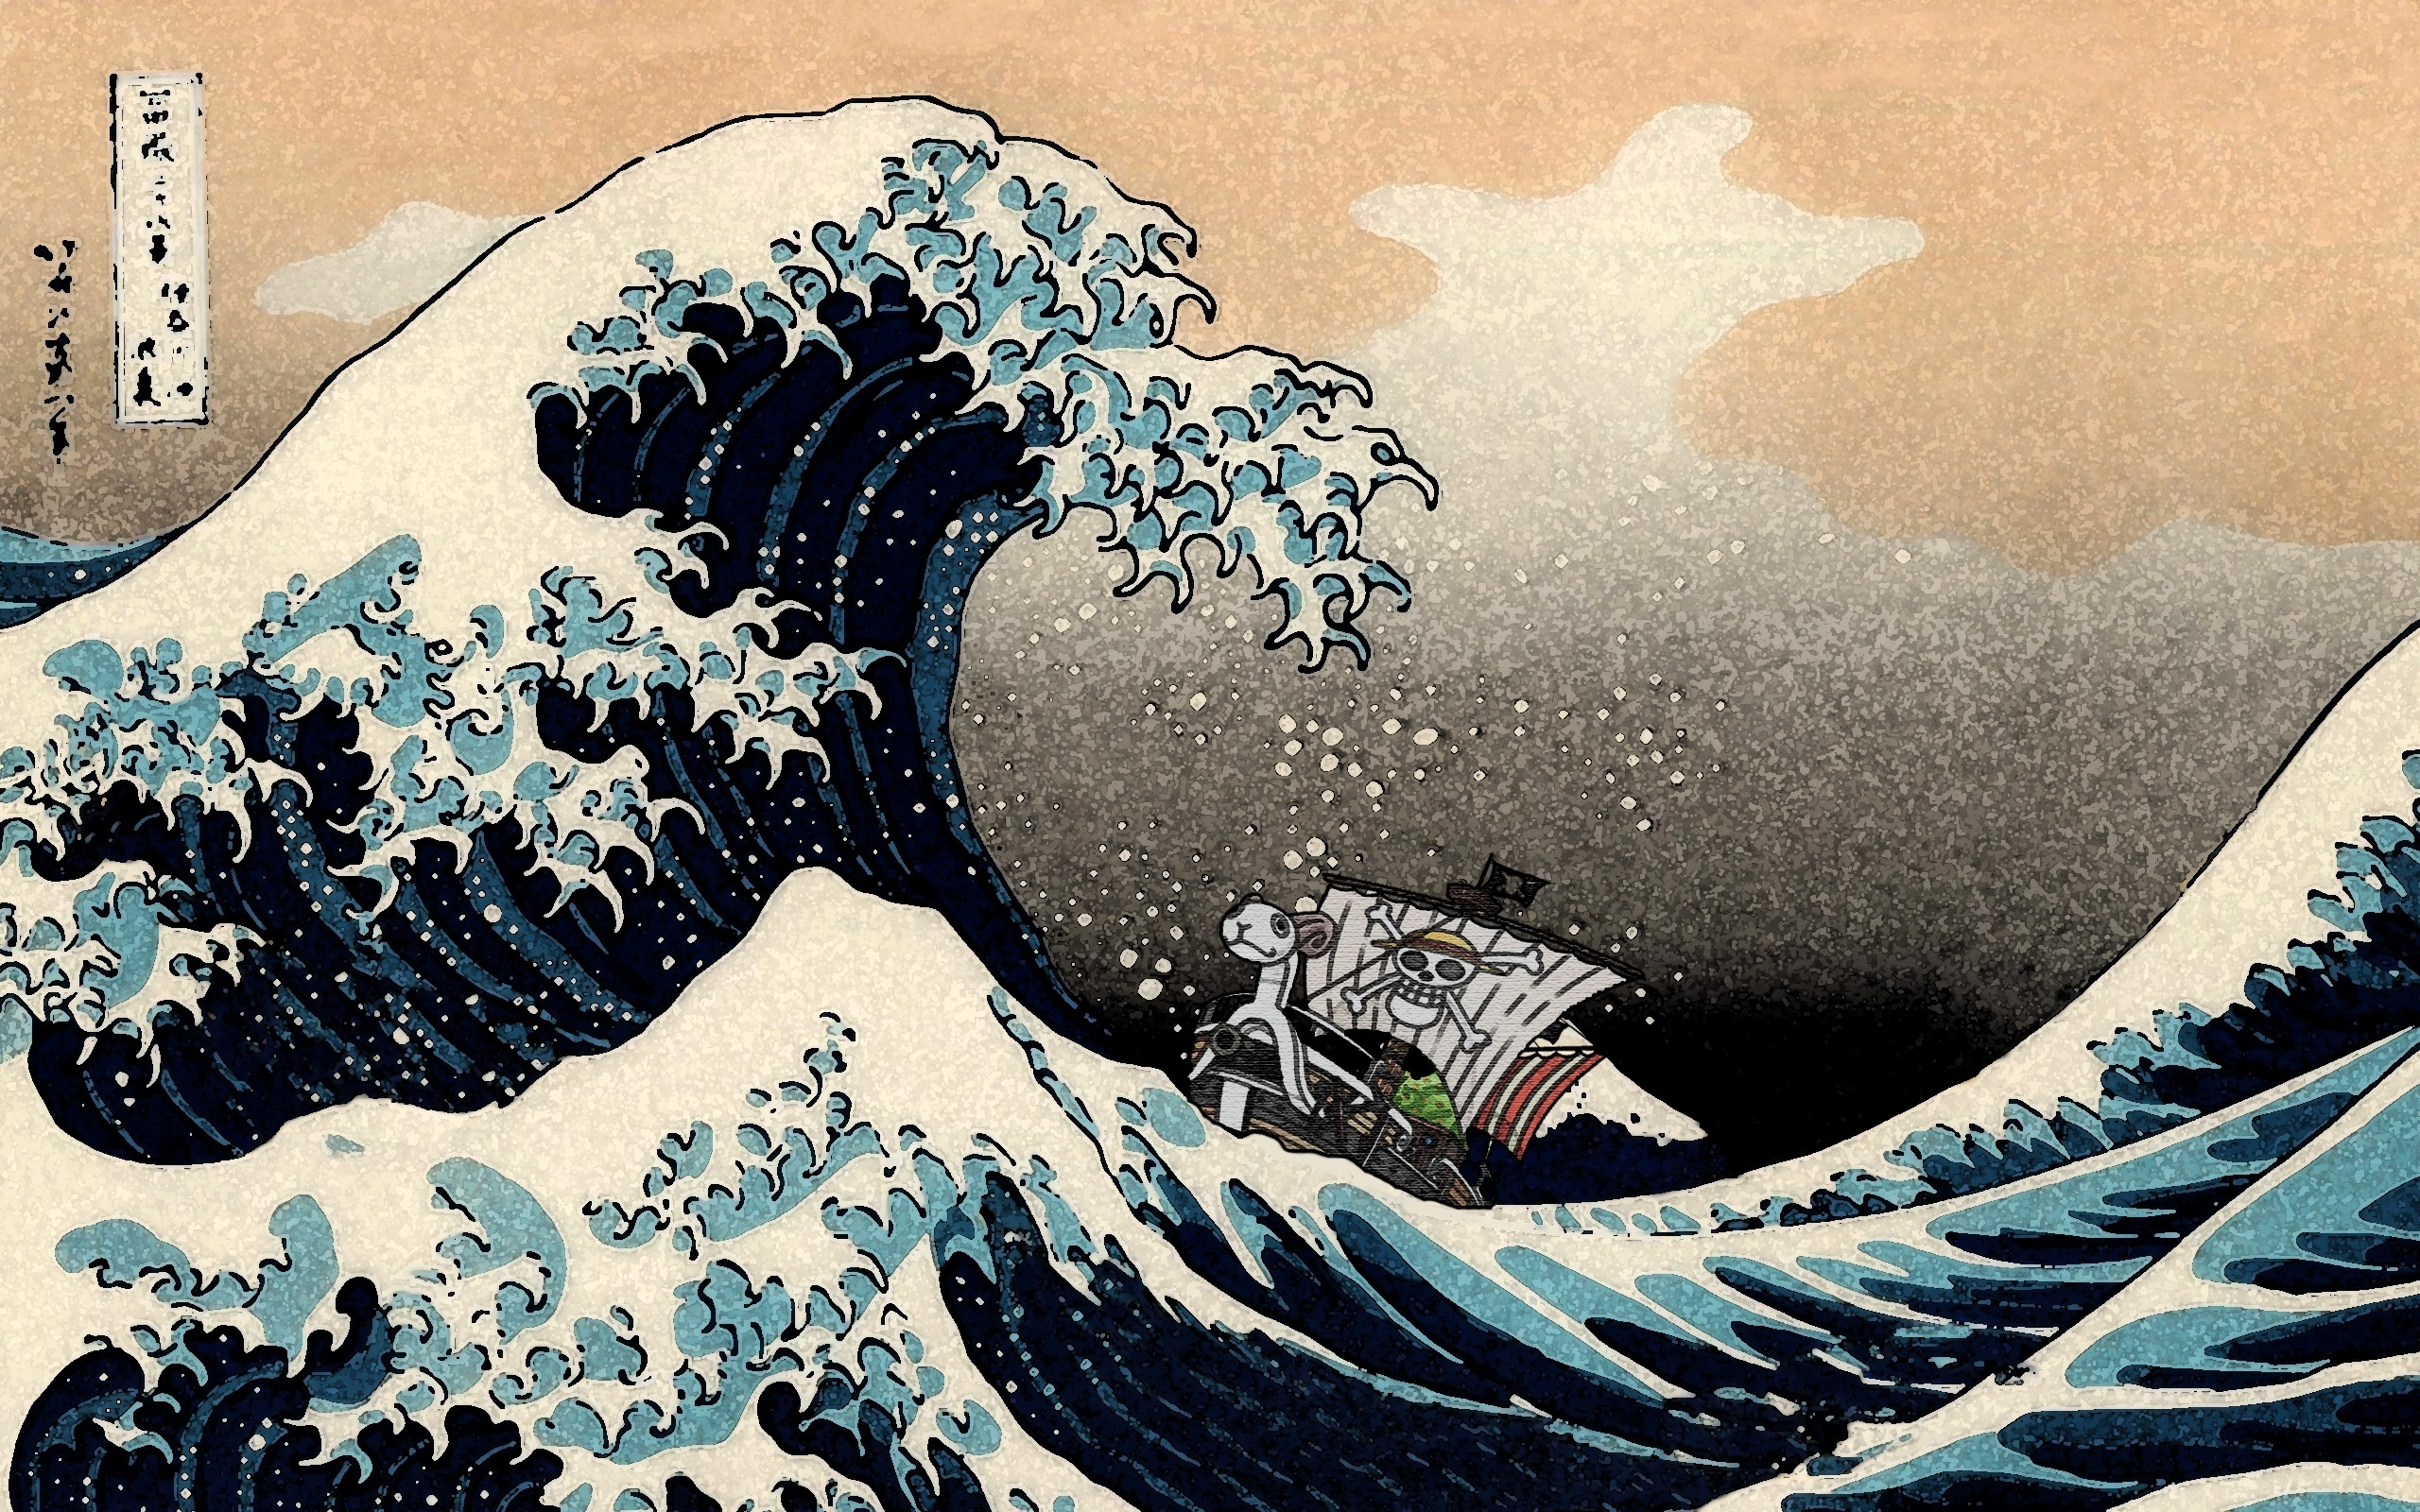 the great wave off kanagawa hd wallpapers - free desktop images and